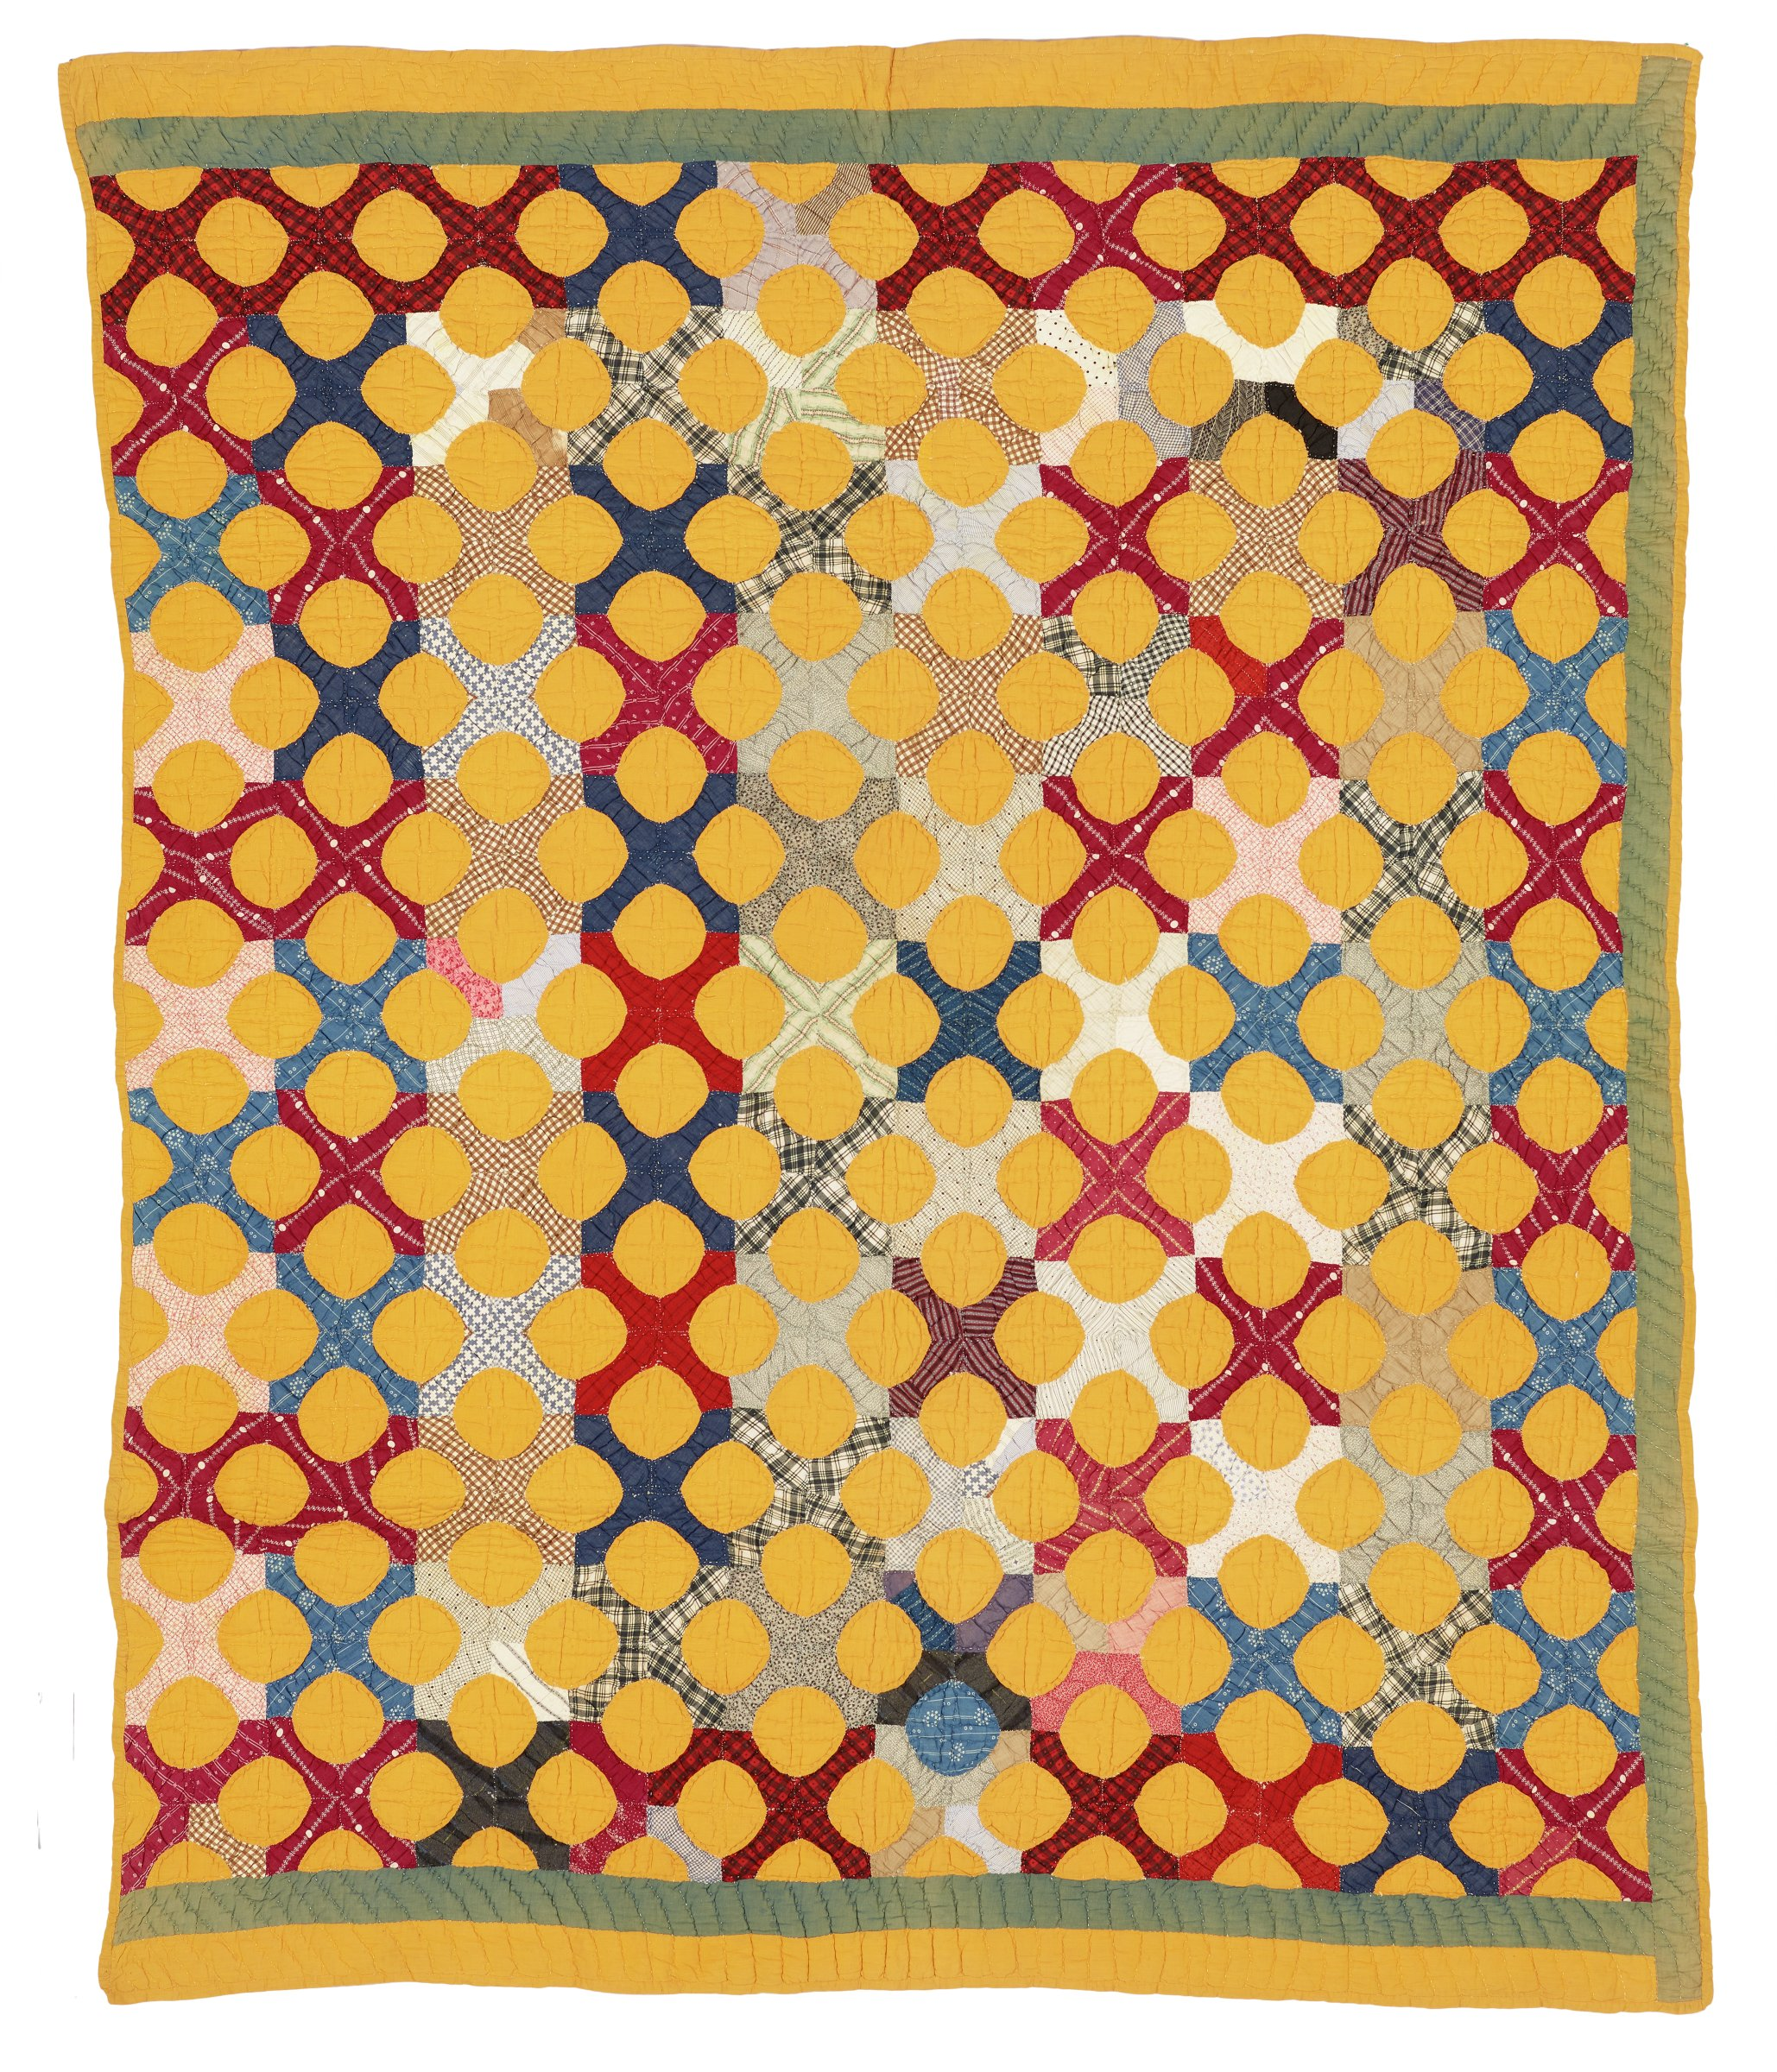 """Large quilt of plain and printed cotton fabrics in the """"Snowball"""" pattern, the top with a pattern of small squares of different fabrics pieced in a grid pattern and on these are sewn rows of round, orange """"snowballs"""" giving the quilt the look of an optical illusion, bordered on the two short sides with a band each of orange and blue fabrics (the blue is very faded) and on one long side edged in orange and on the other long side a blue band edged in orange, the backing of plain, cream-colored cotton."""